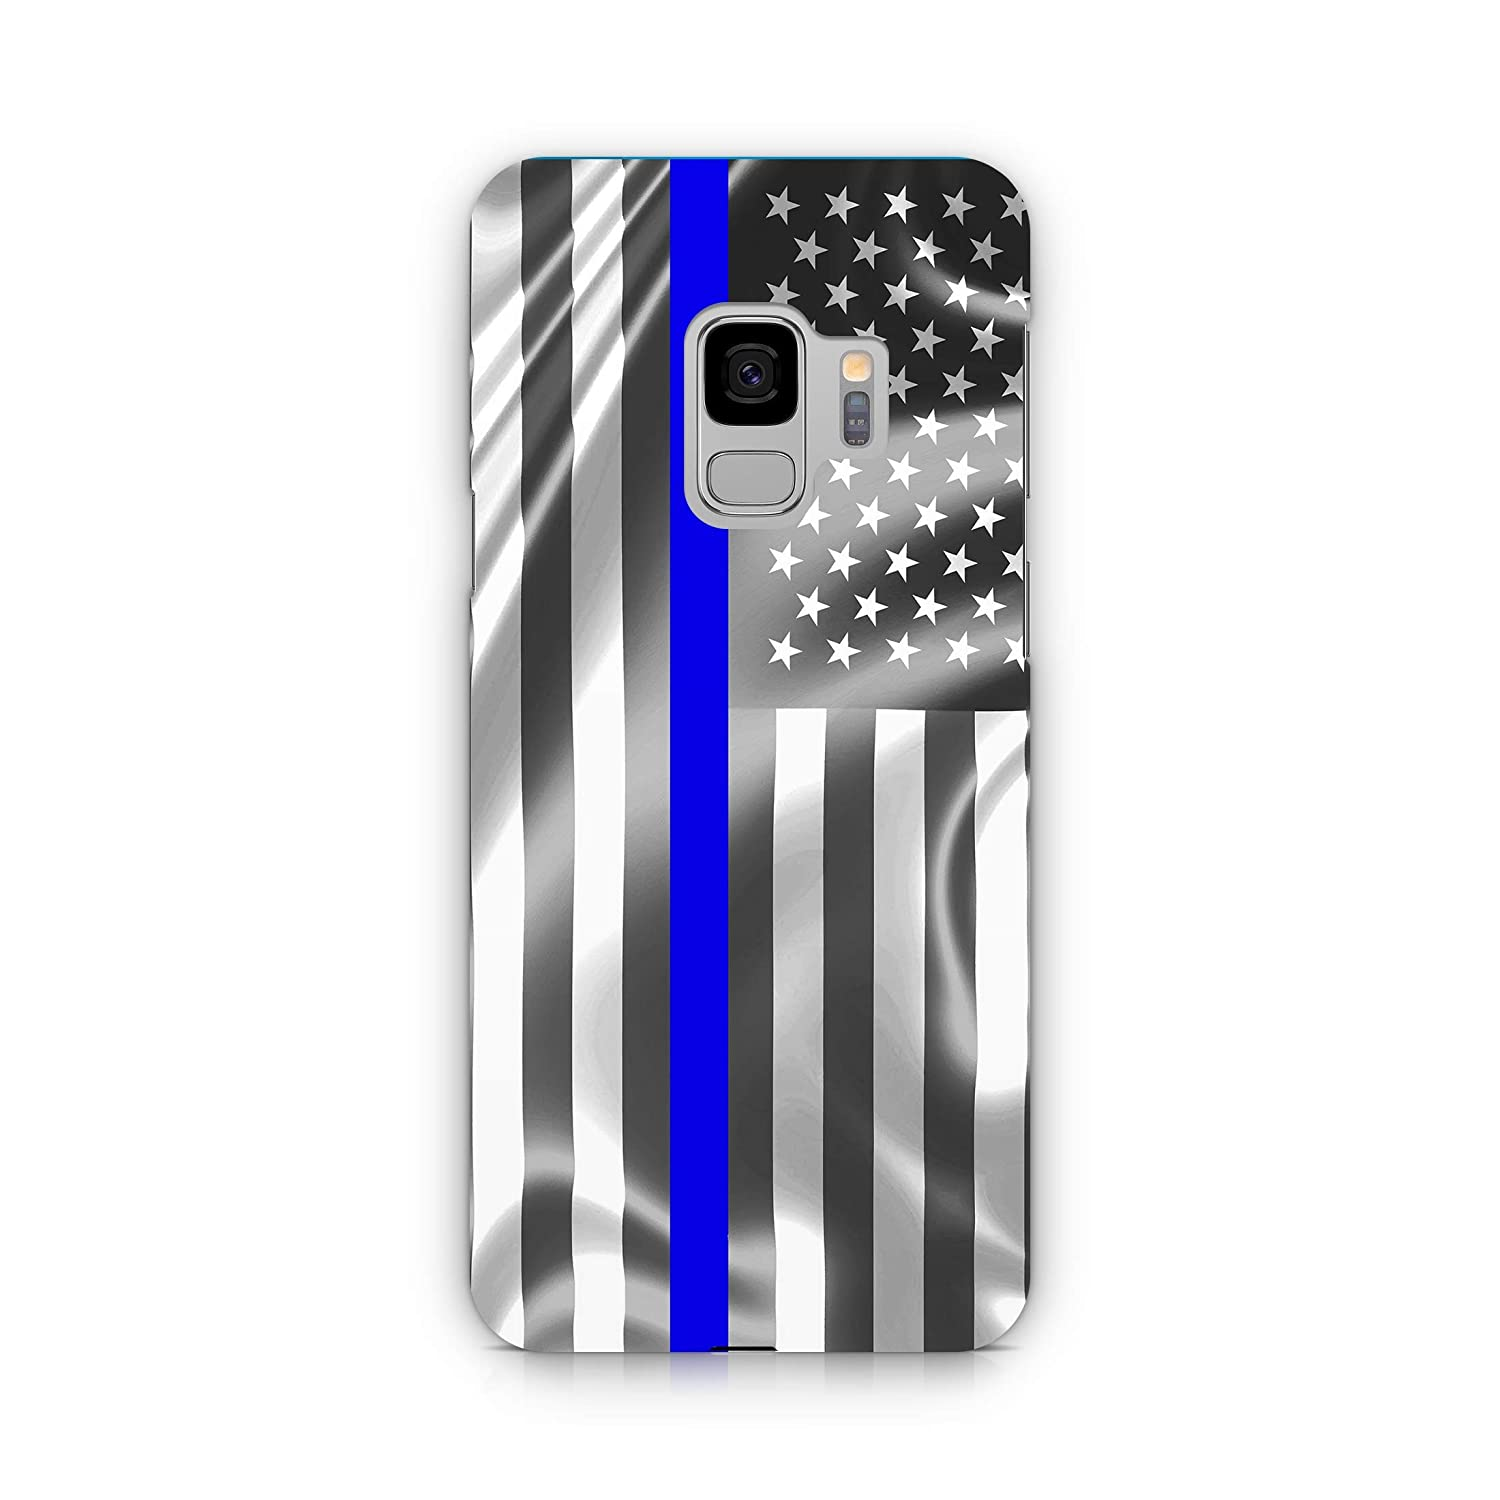 Thin Blue Line Case Samsung Models